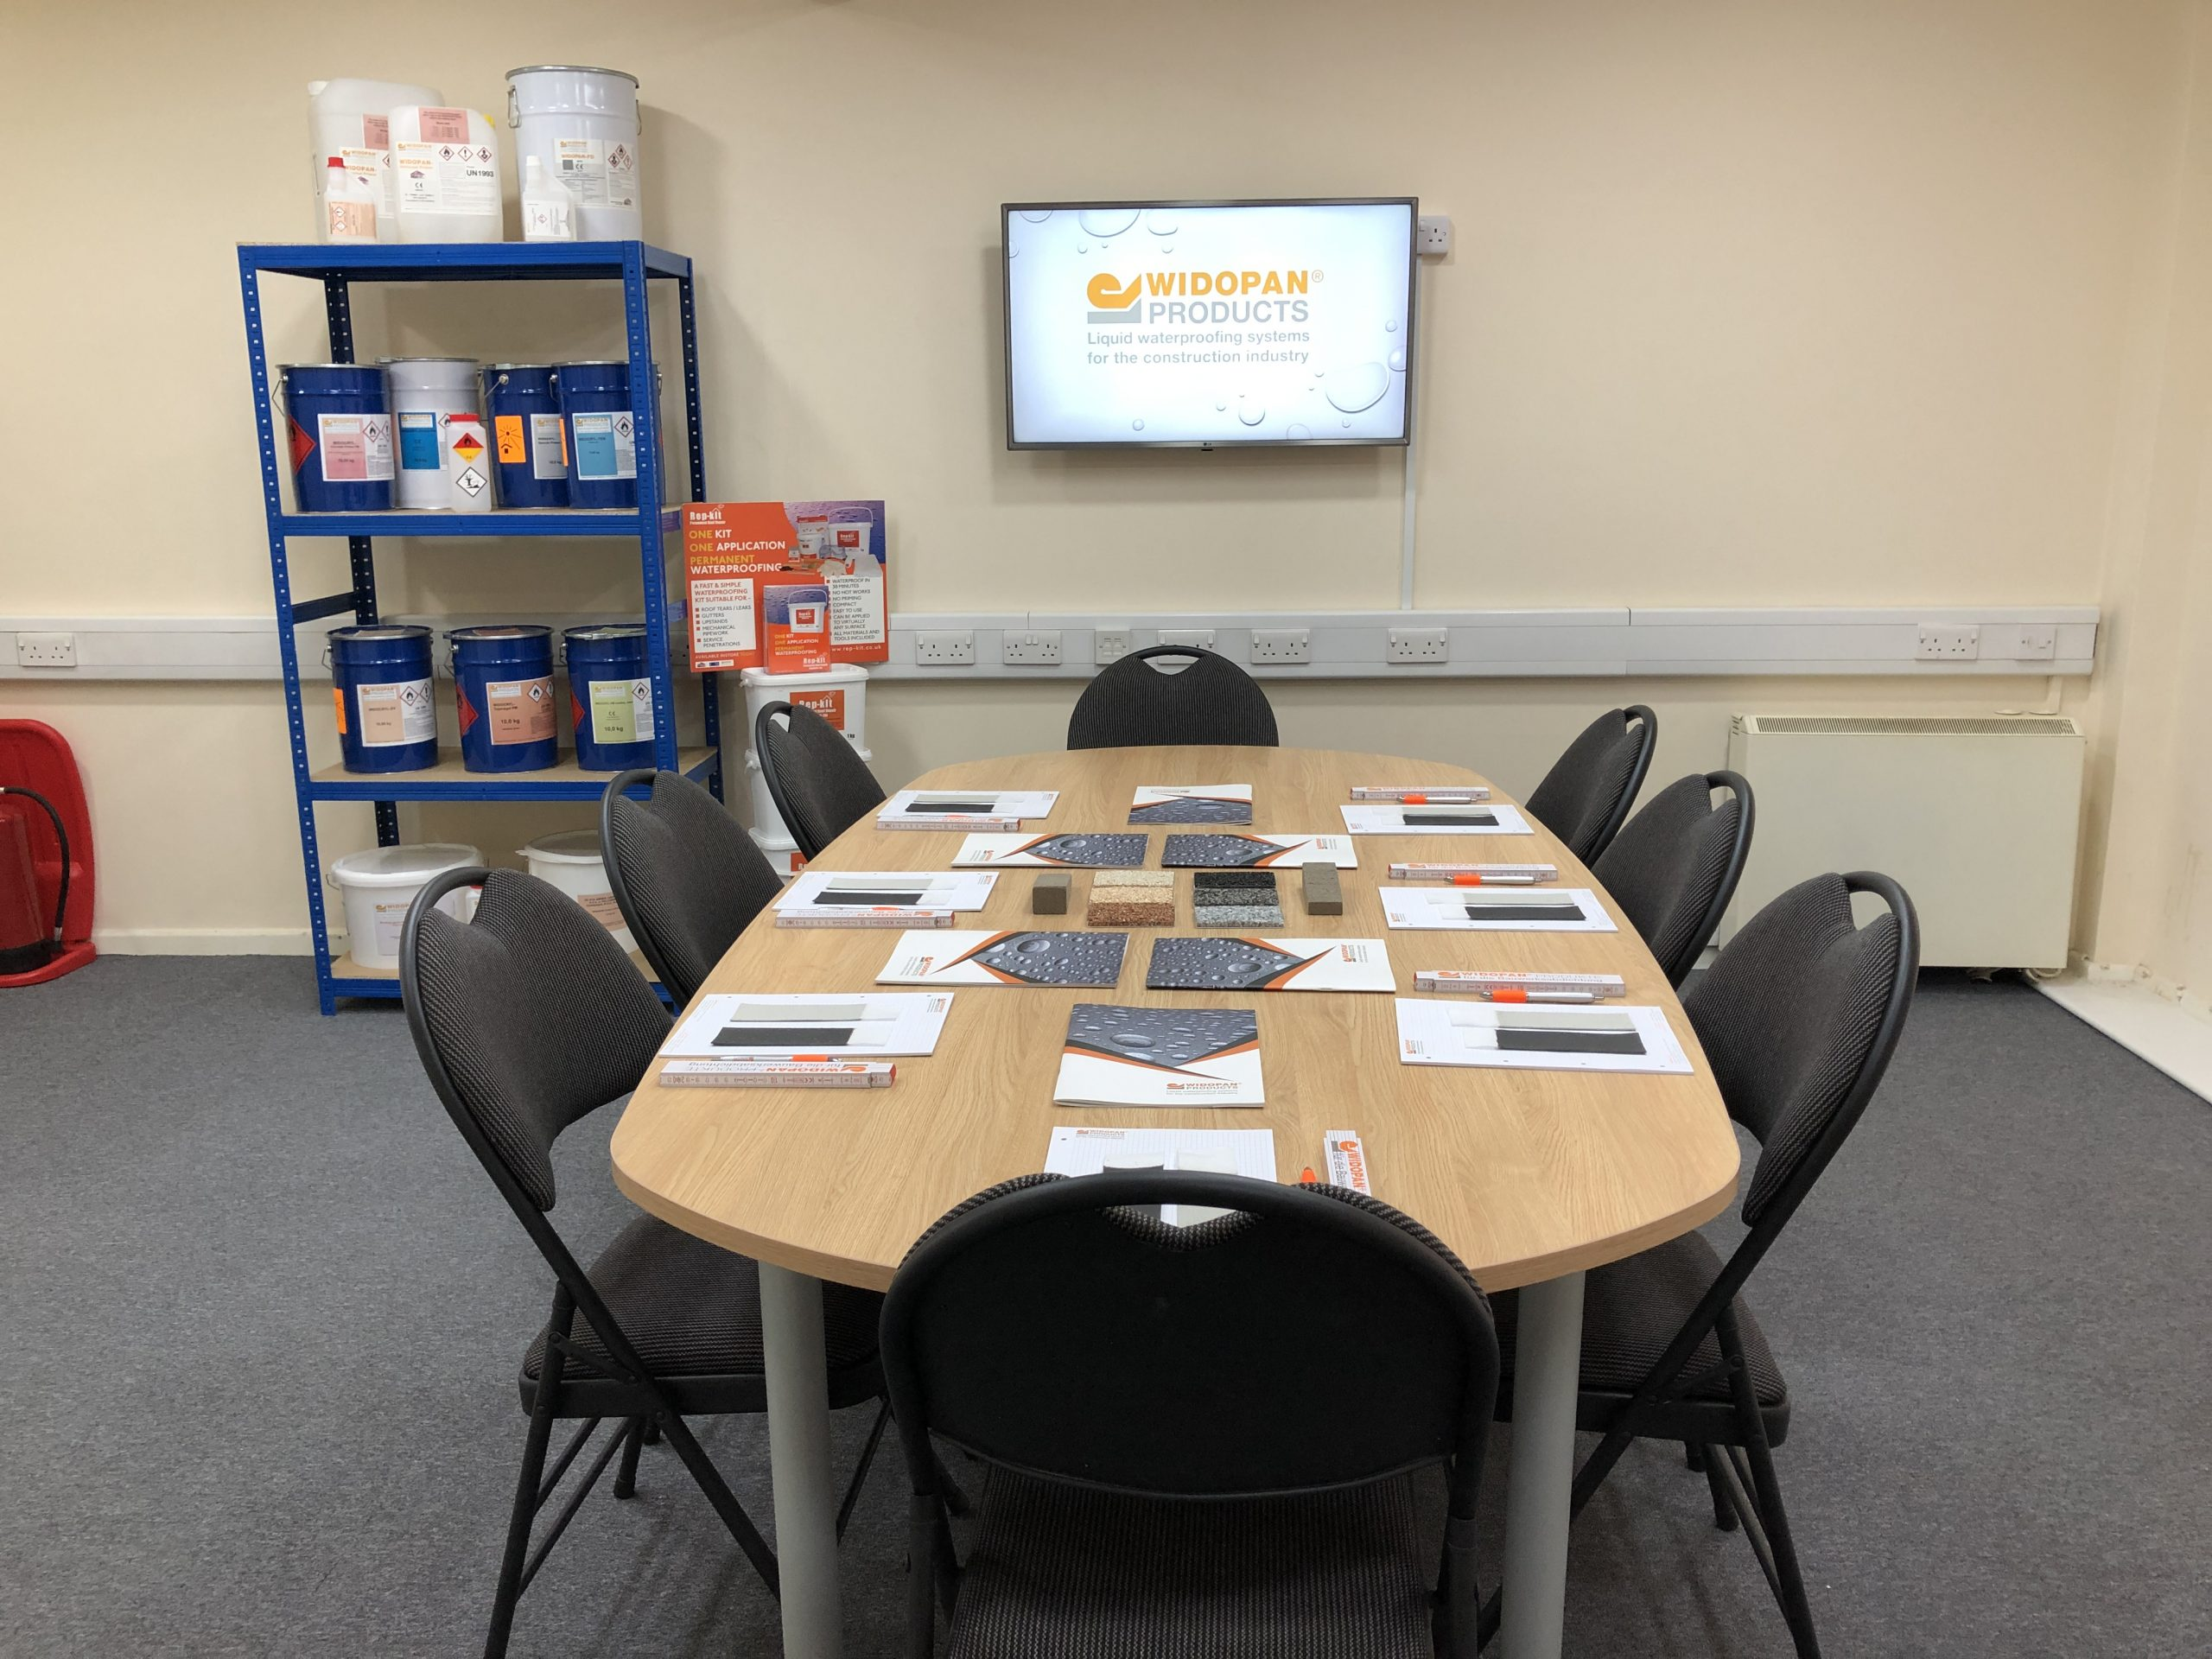 Installer Training Centre - Widopan, Liquid WaterProofing Systems for Roofs, Building, the Construction industy, Essex